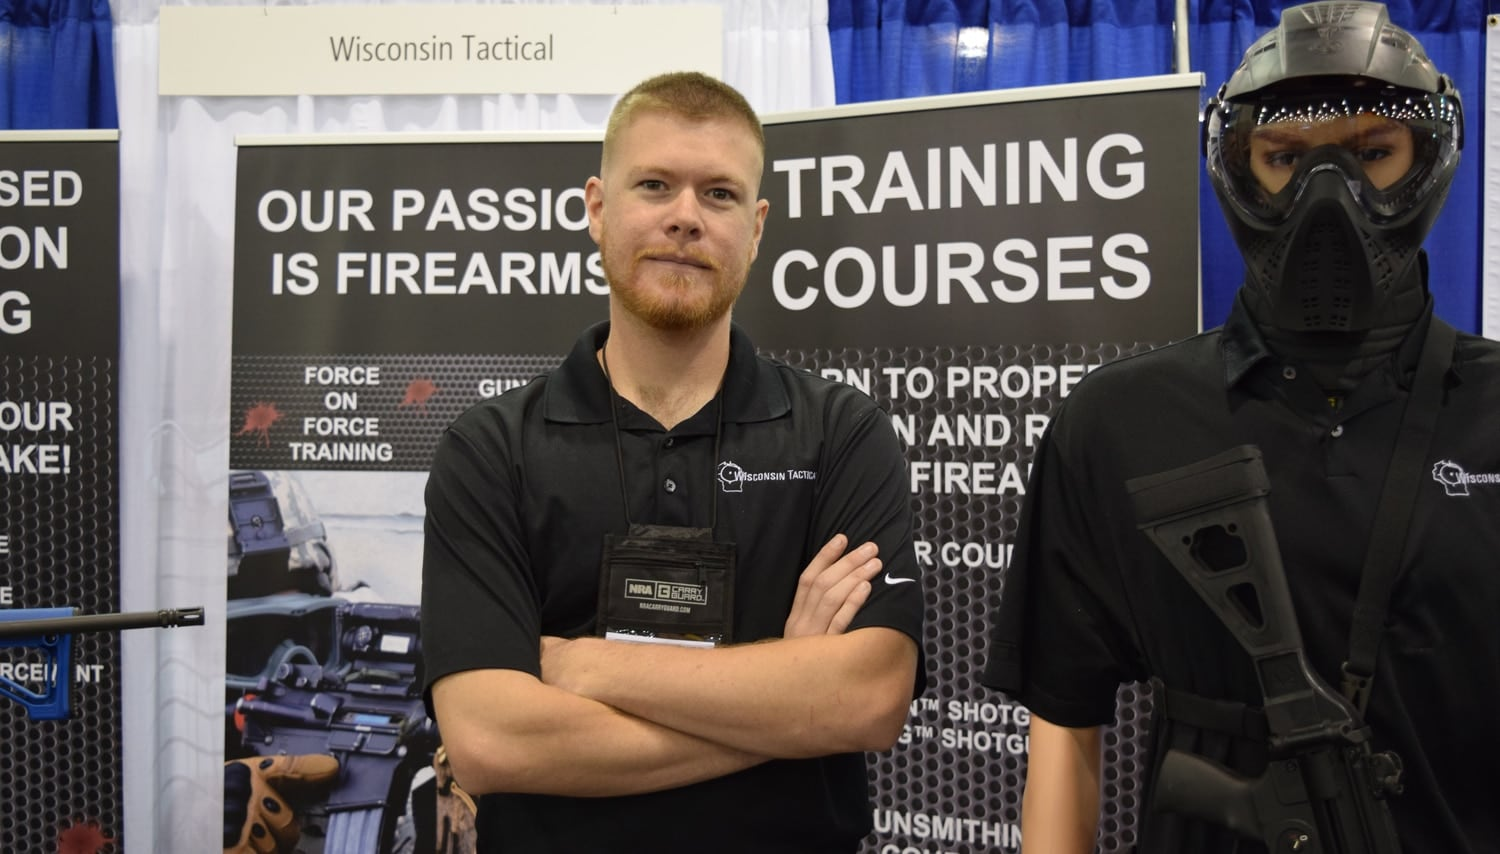 Training courses? Custom firearms? Force on force? Check out Waukesha's Wisconsin Tactical.